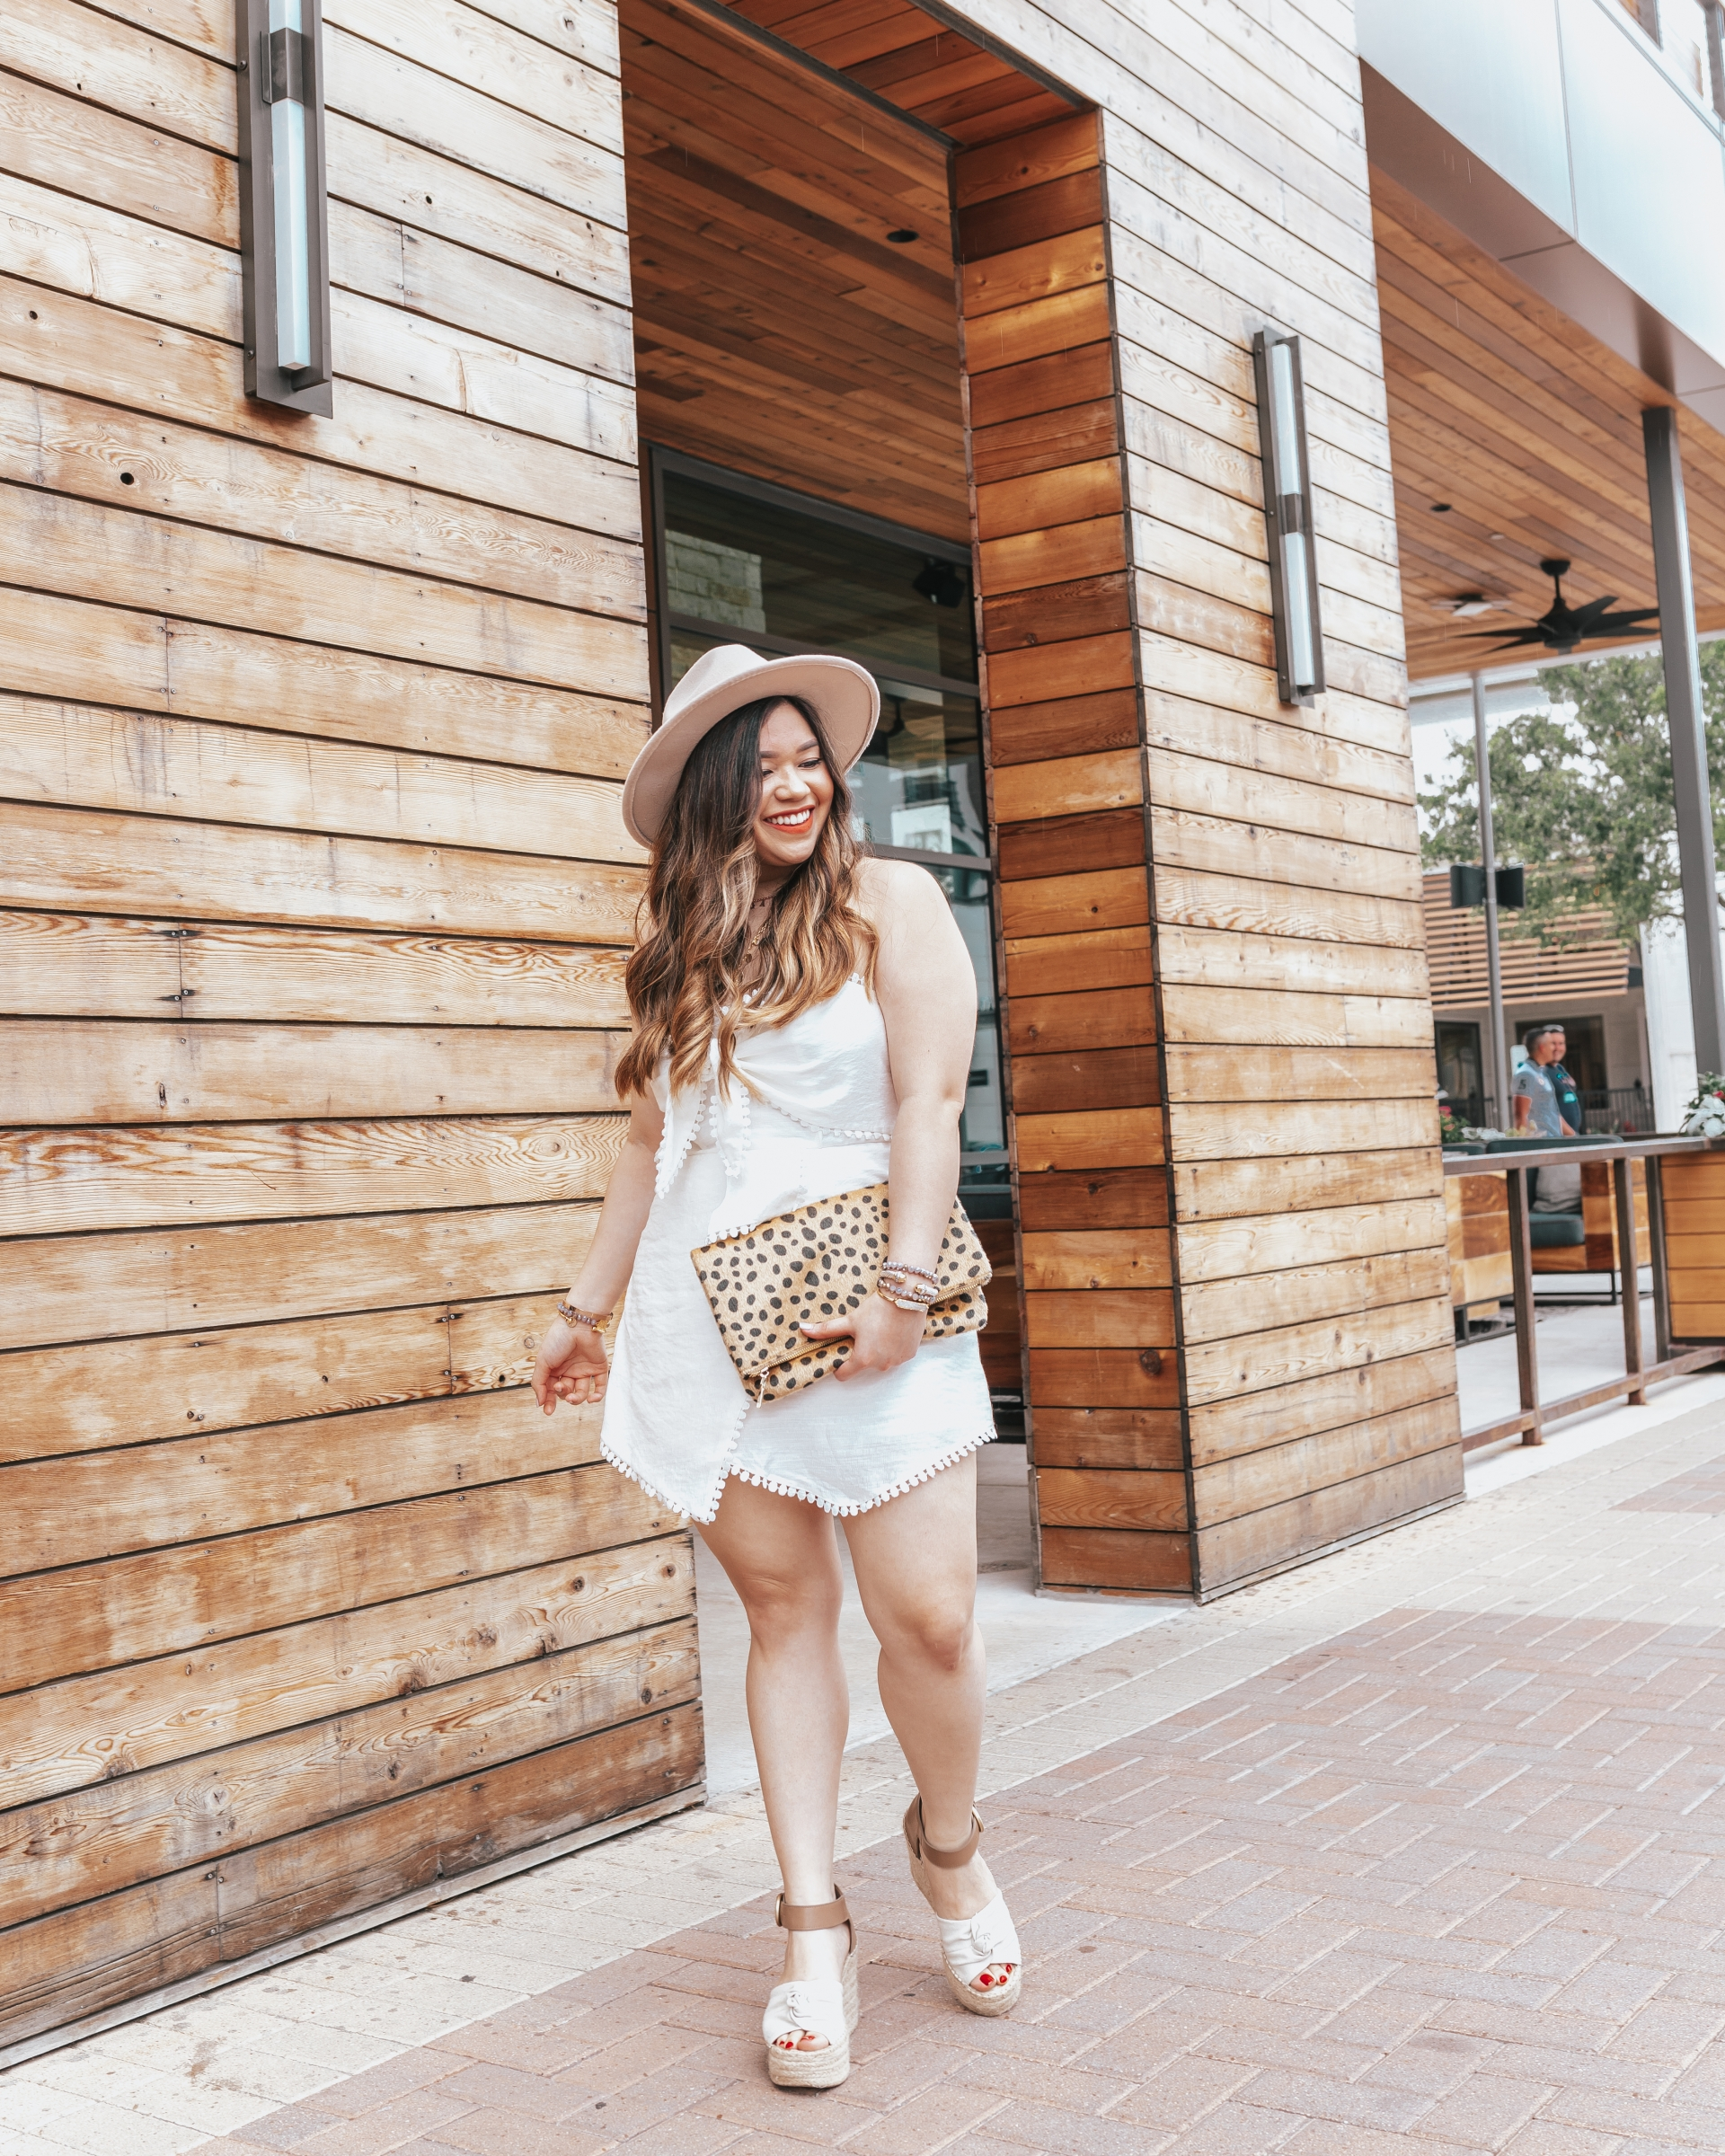 White After Labor Day White Romper Shein Red Dress Boutique Pom Pom Asymmetrical Faux Wrap Skirt Skort Tube Romper Marc Fisher Espadrilles Fedora Hat Lack of Color Hat Dupe Leopard Clutch Leopard Print Clutch Choker Name Necklace Personalized